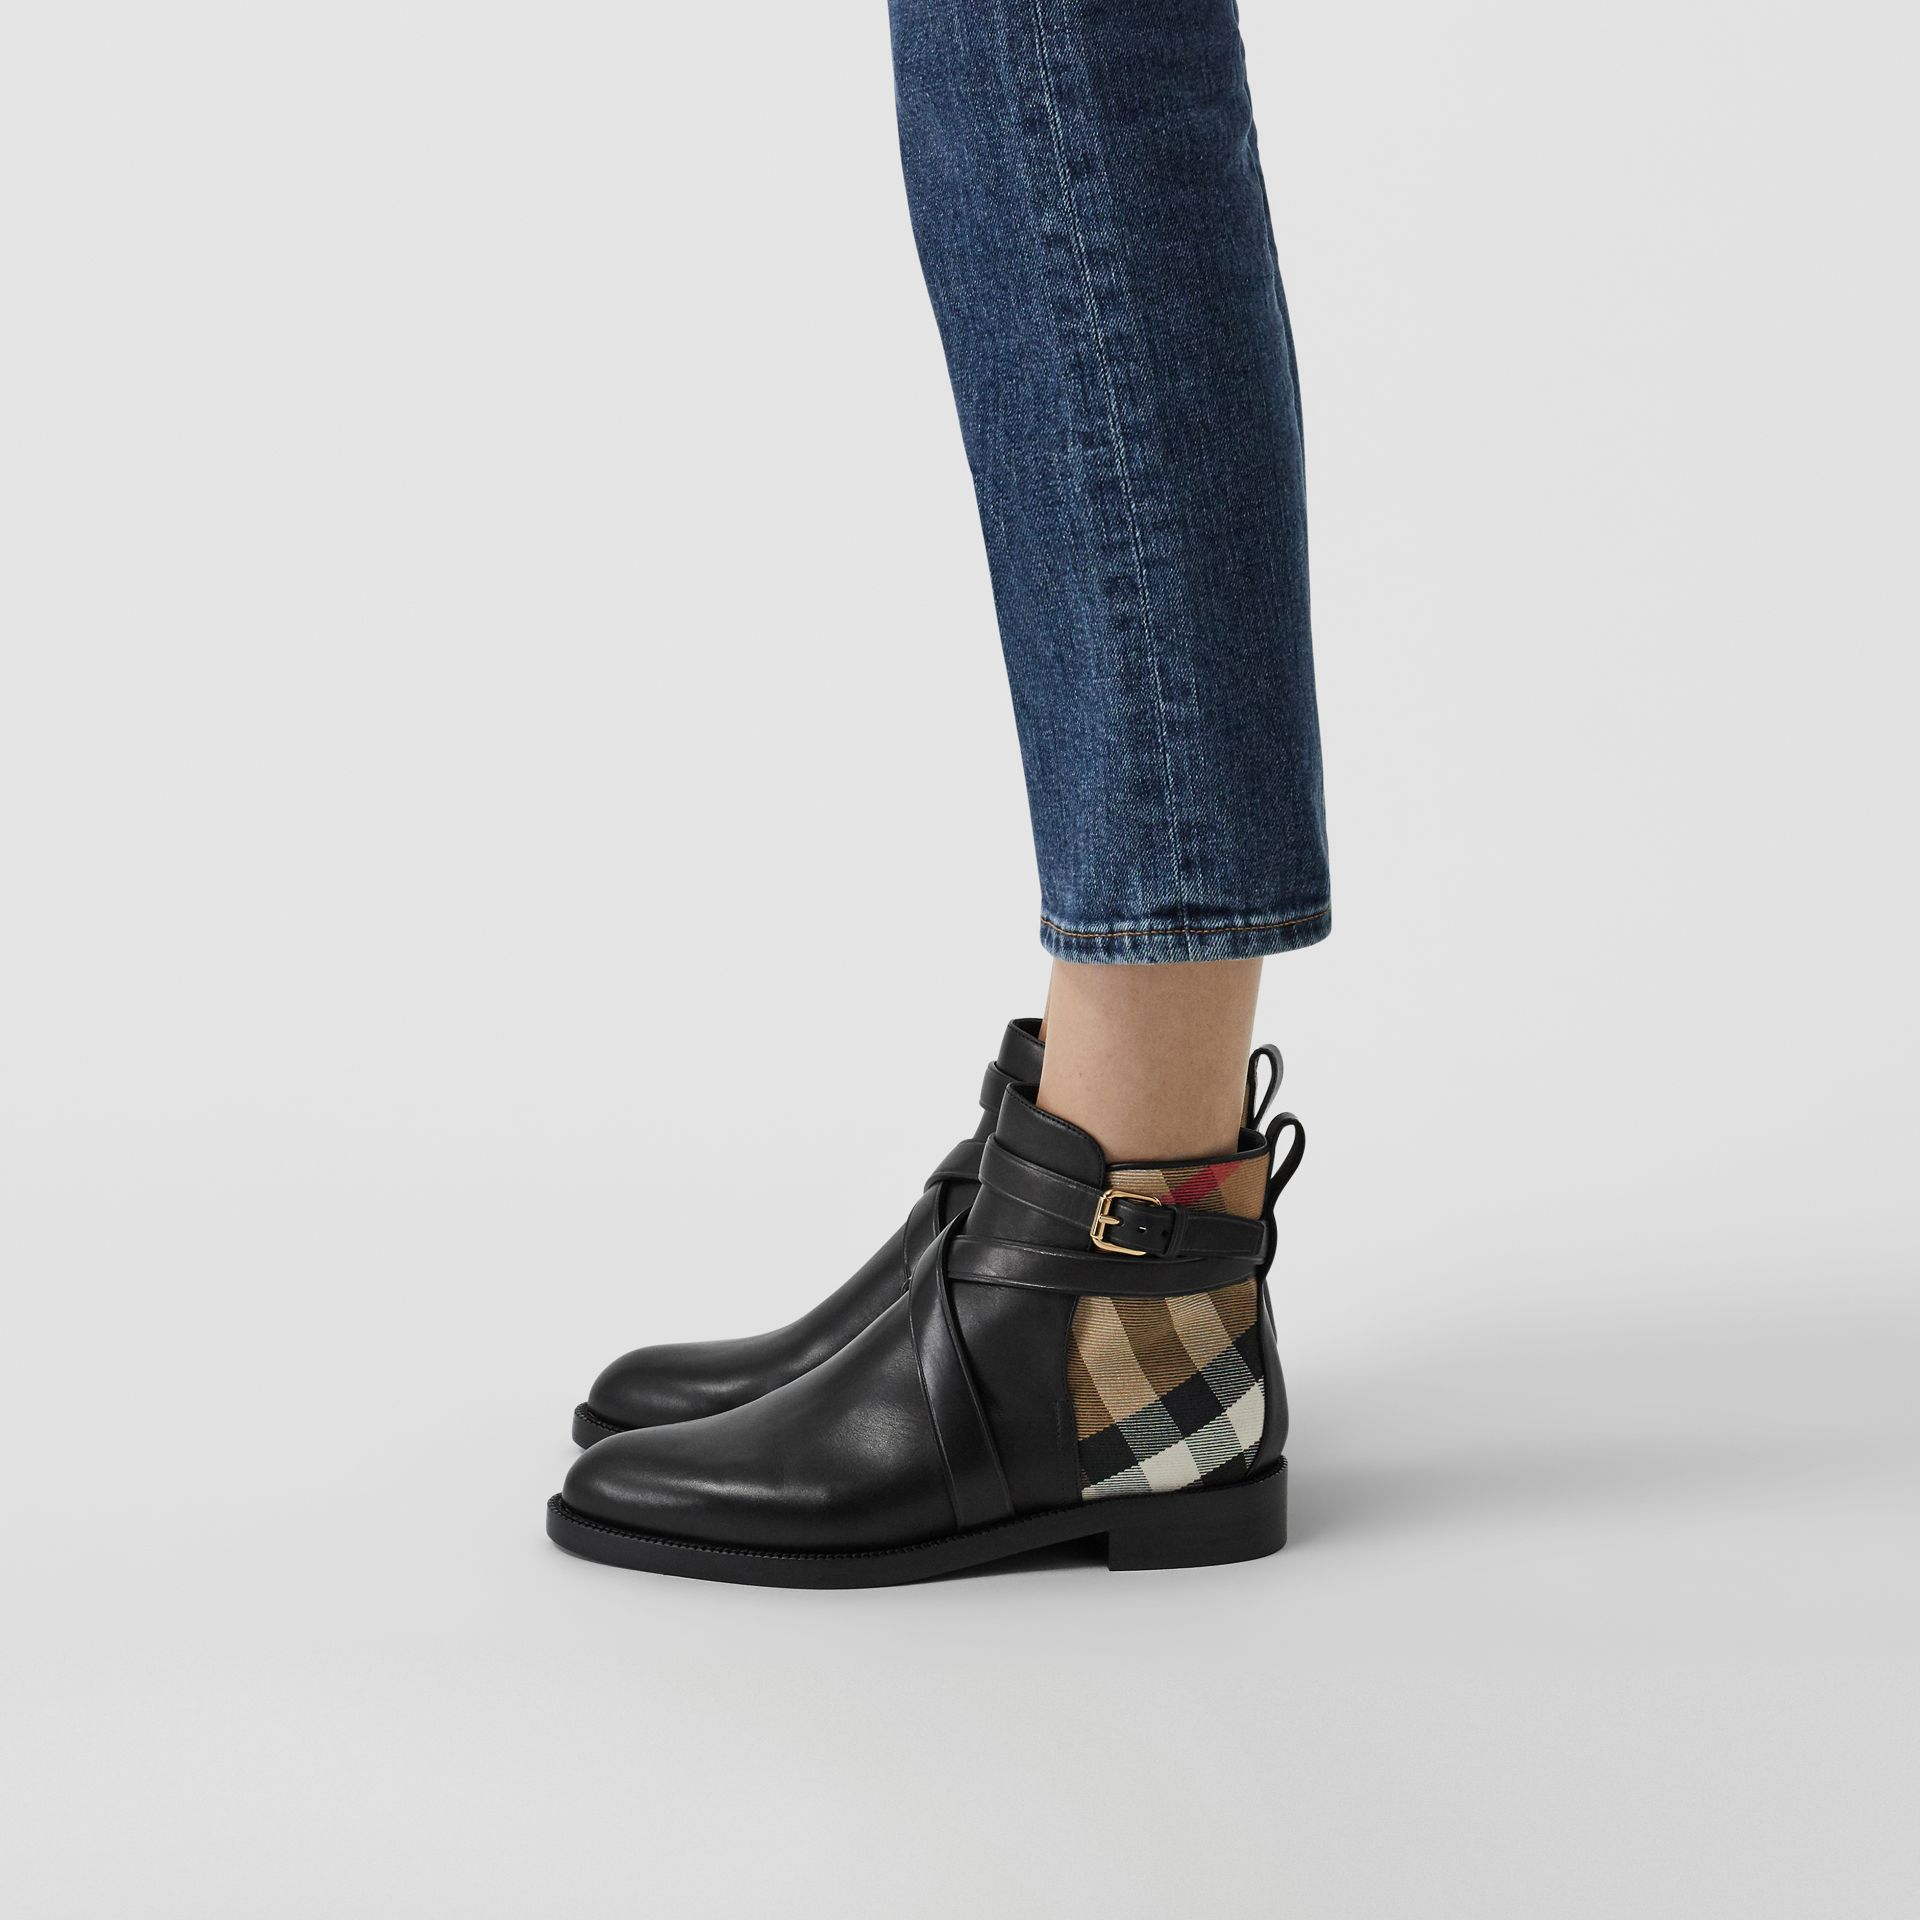 House Check and Leather Ankle Boots in Black - Women | Burberry - gallery image 2